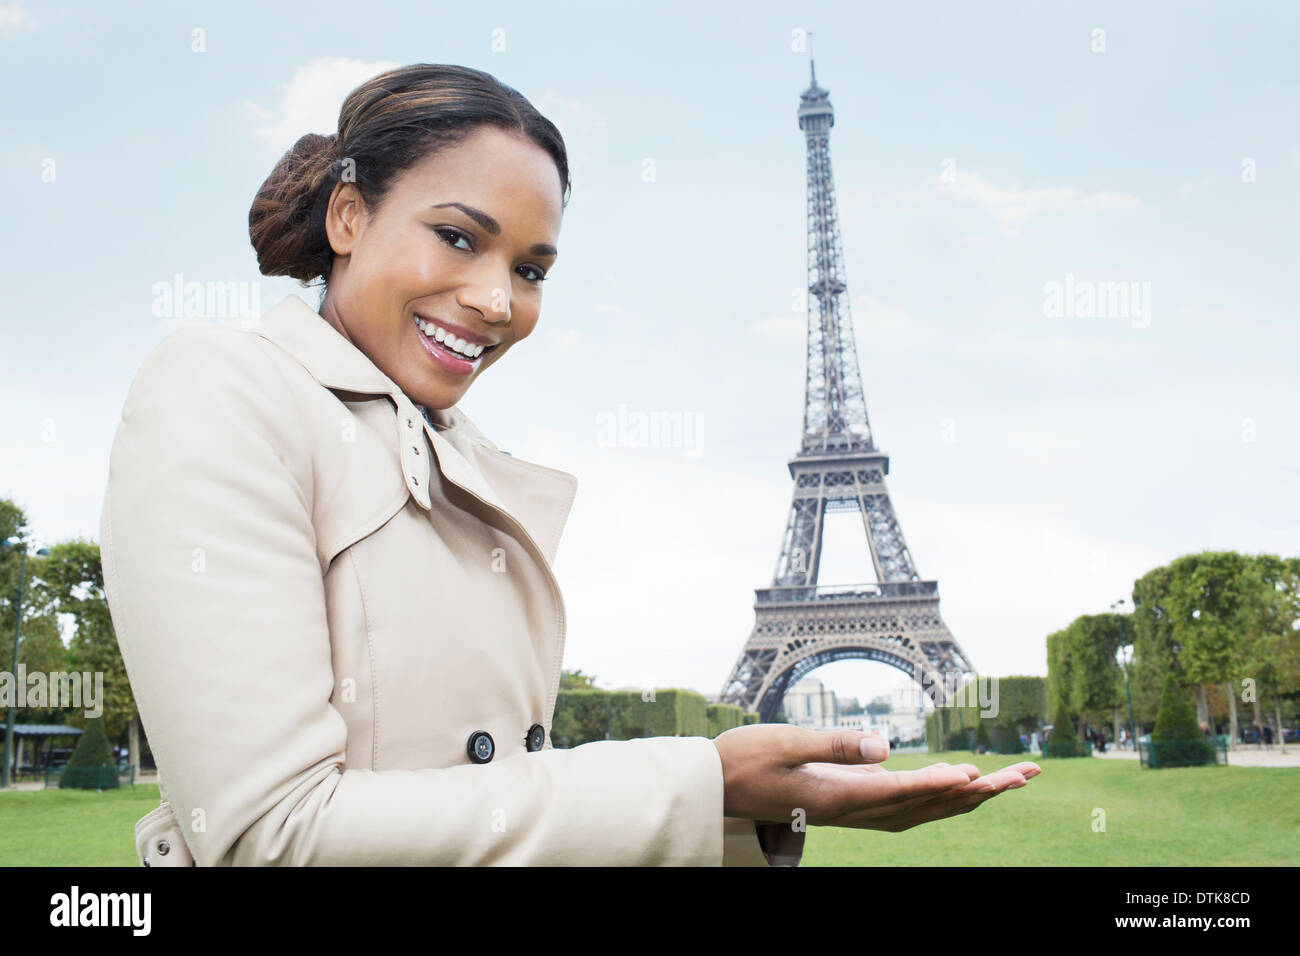 woman-posing-as-if-holding-the-eiffel-tower-in-hands-paris-france-DTK8CD.jpg